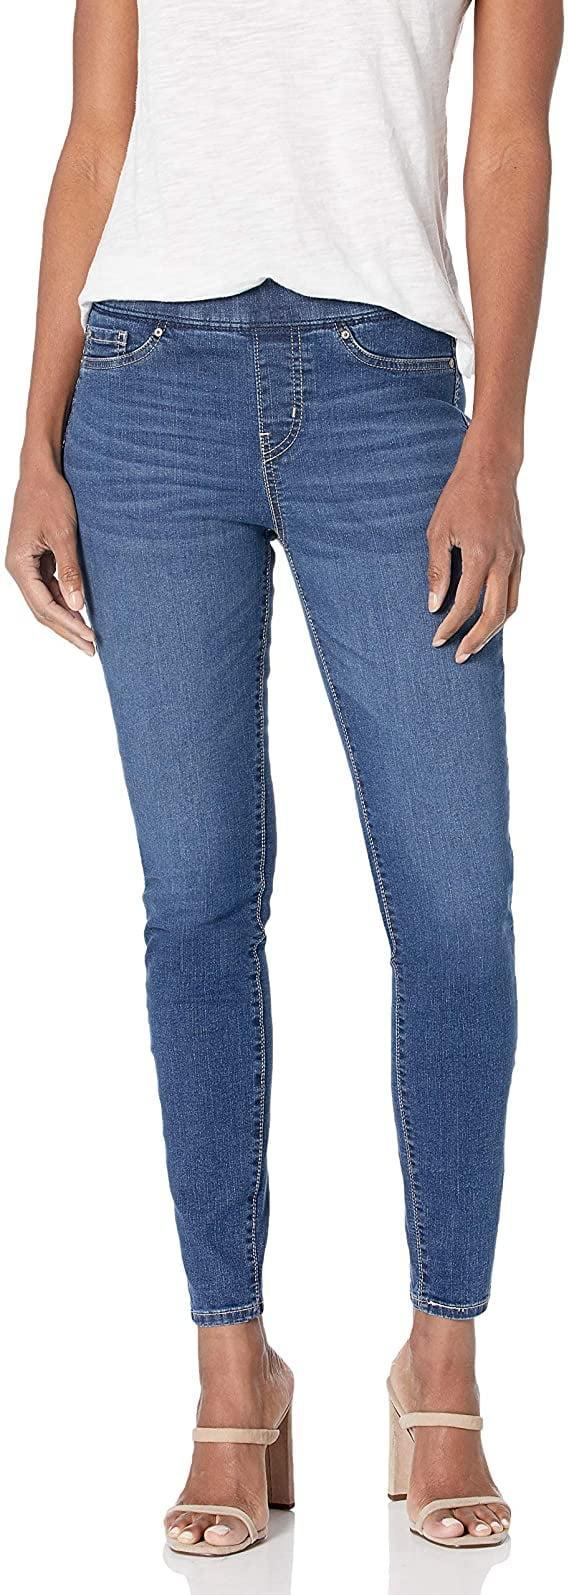 <p><span>Signature by Levi Strauss & Co. Gold Label Totally Shaping Pull-On Skinny Jeans</span> ($23, originally $28)</p>